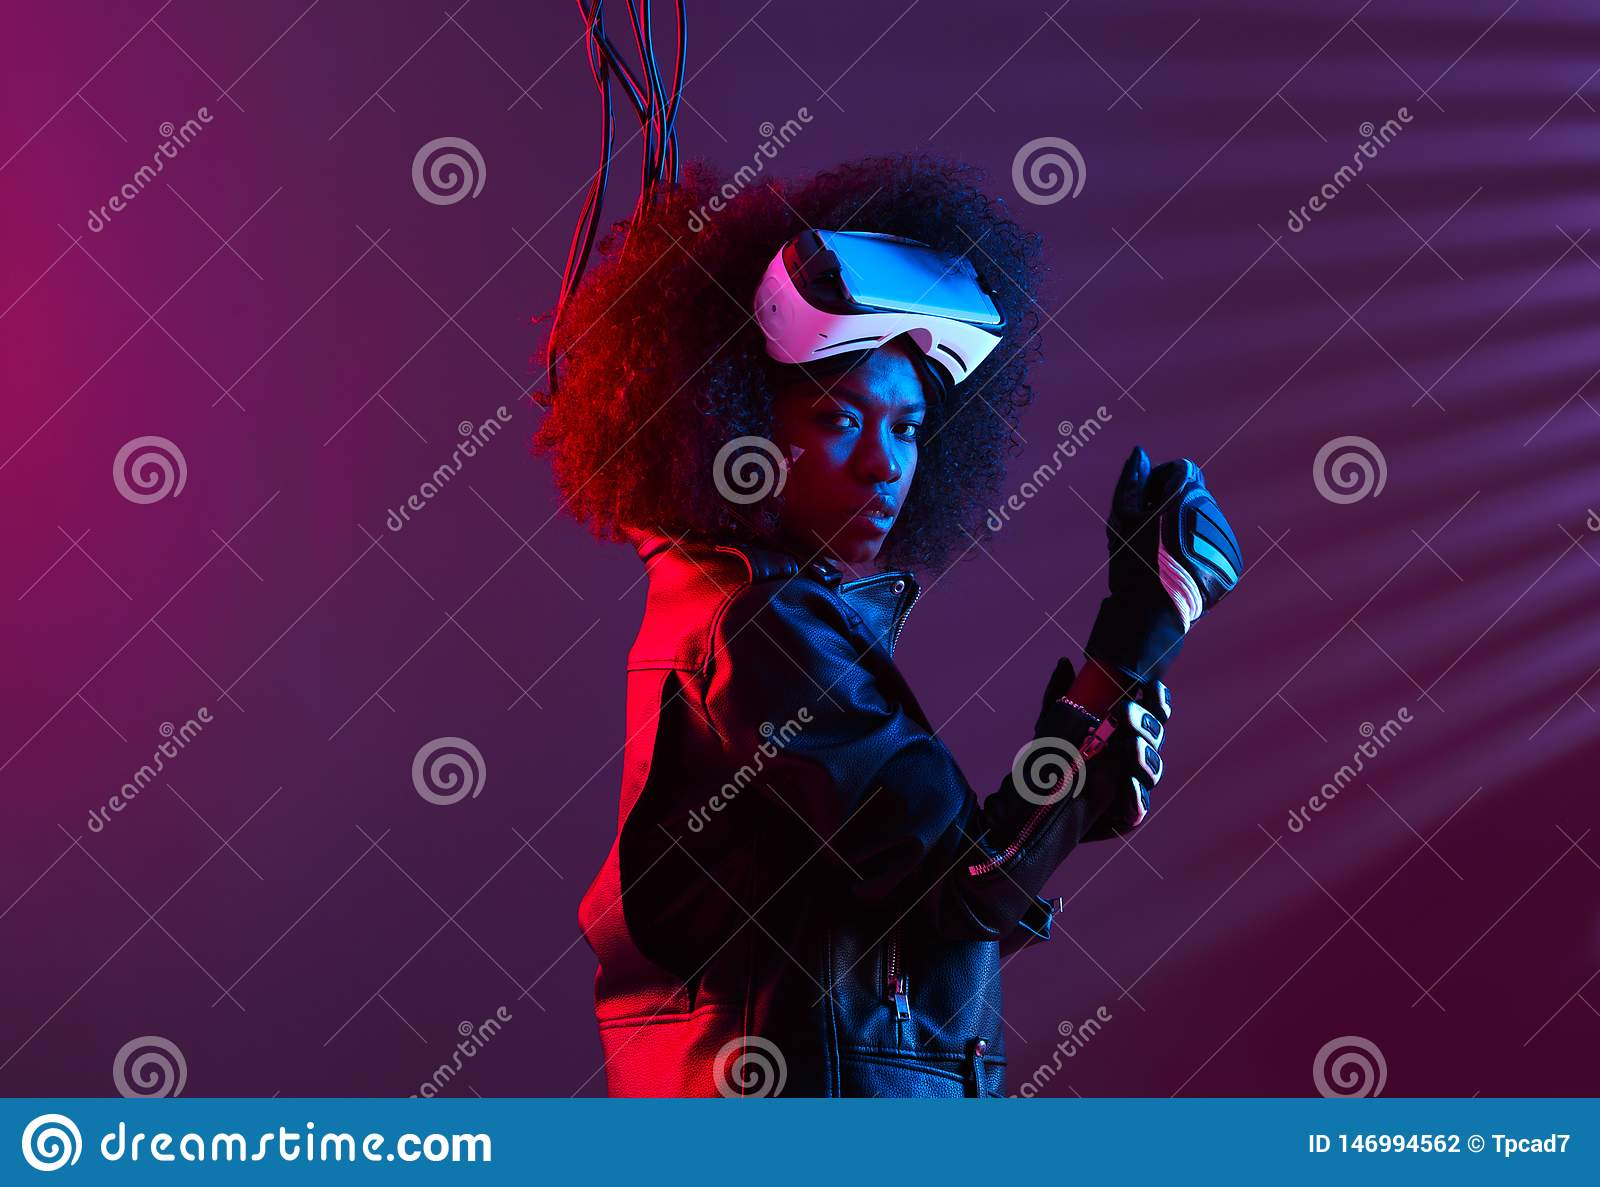 Curly dark haired girl dressed in a black leather jacket and gloves is wearing the virtual reality glasses on her head